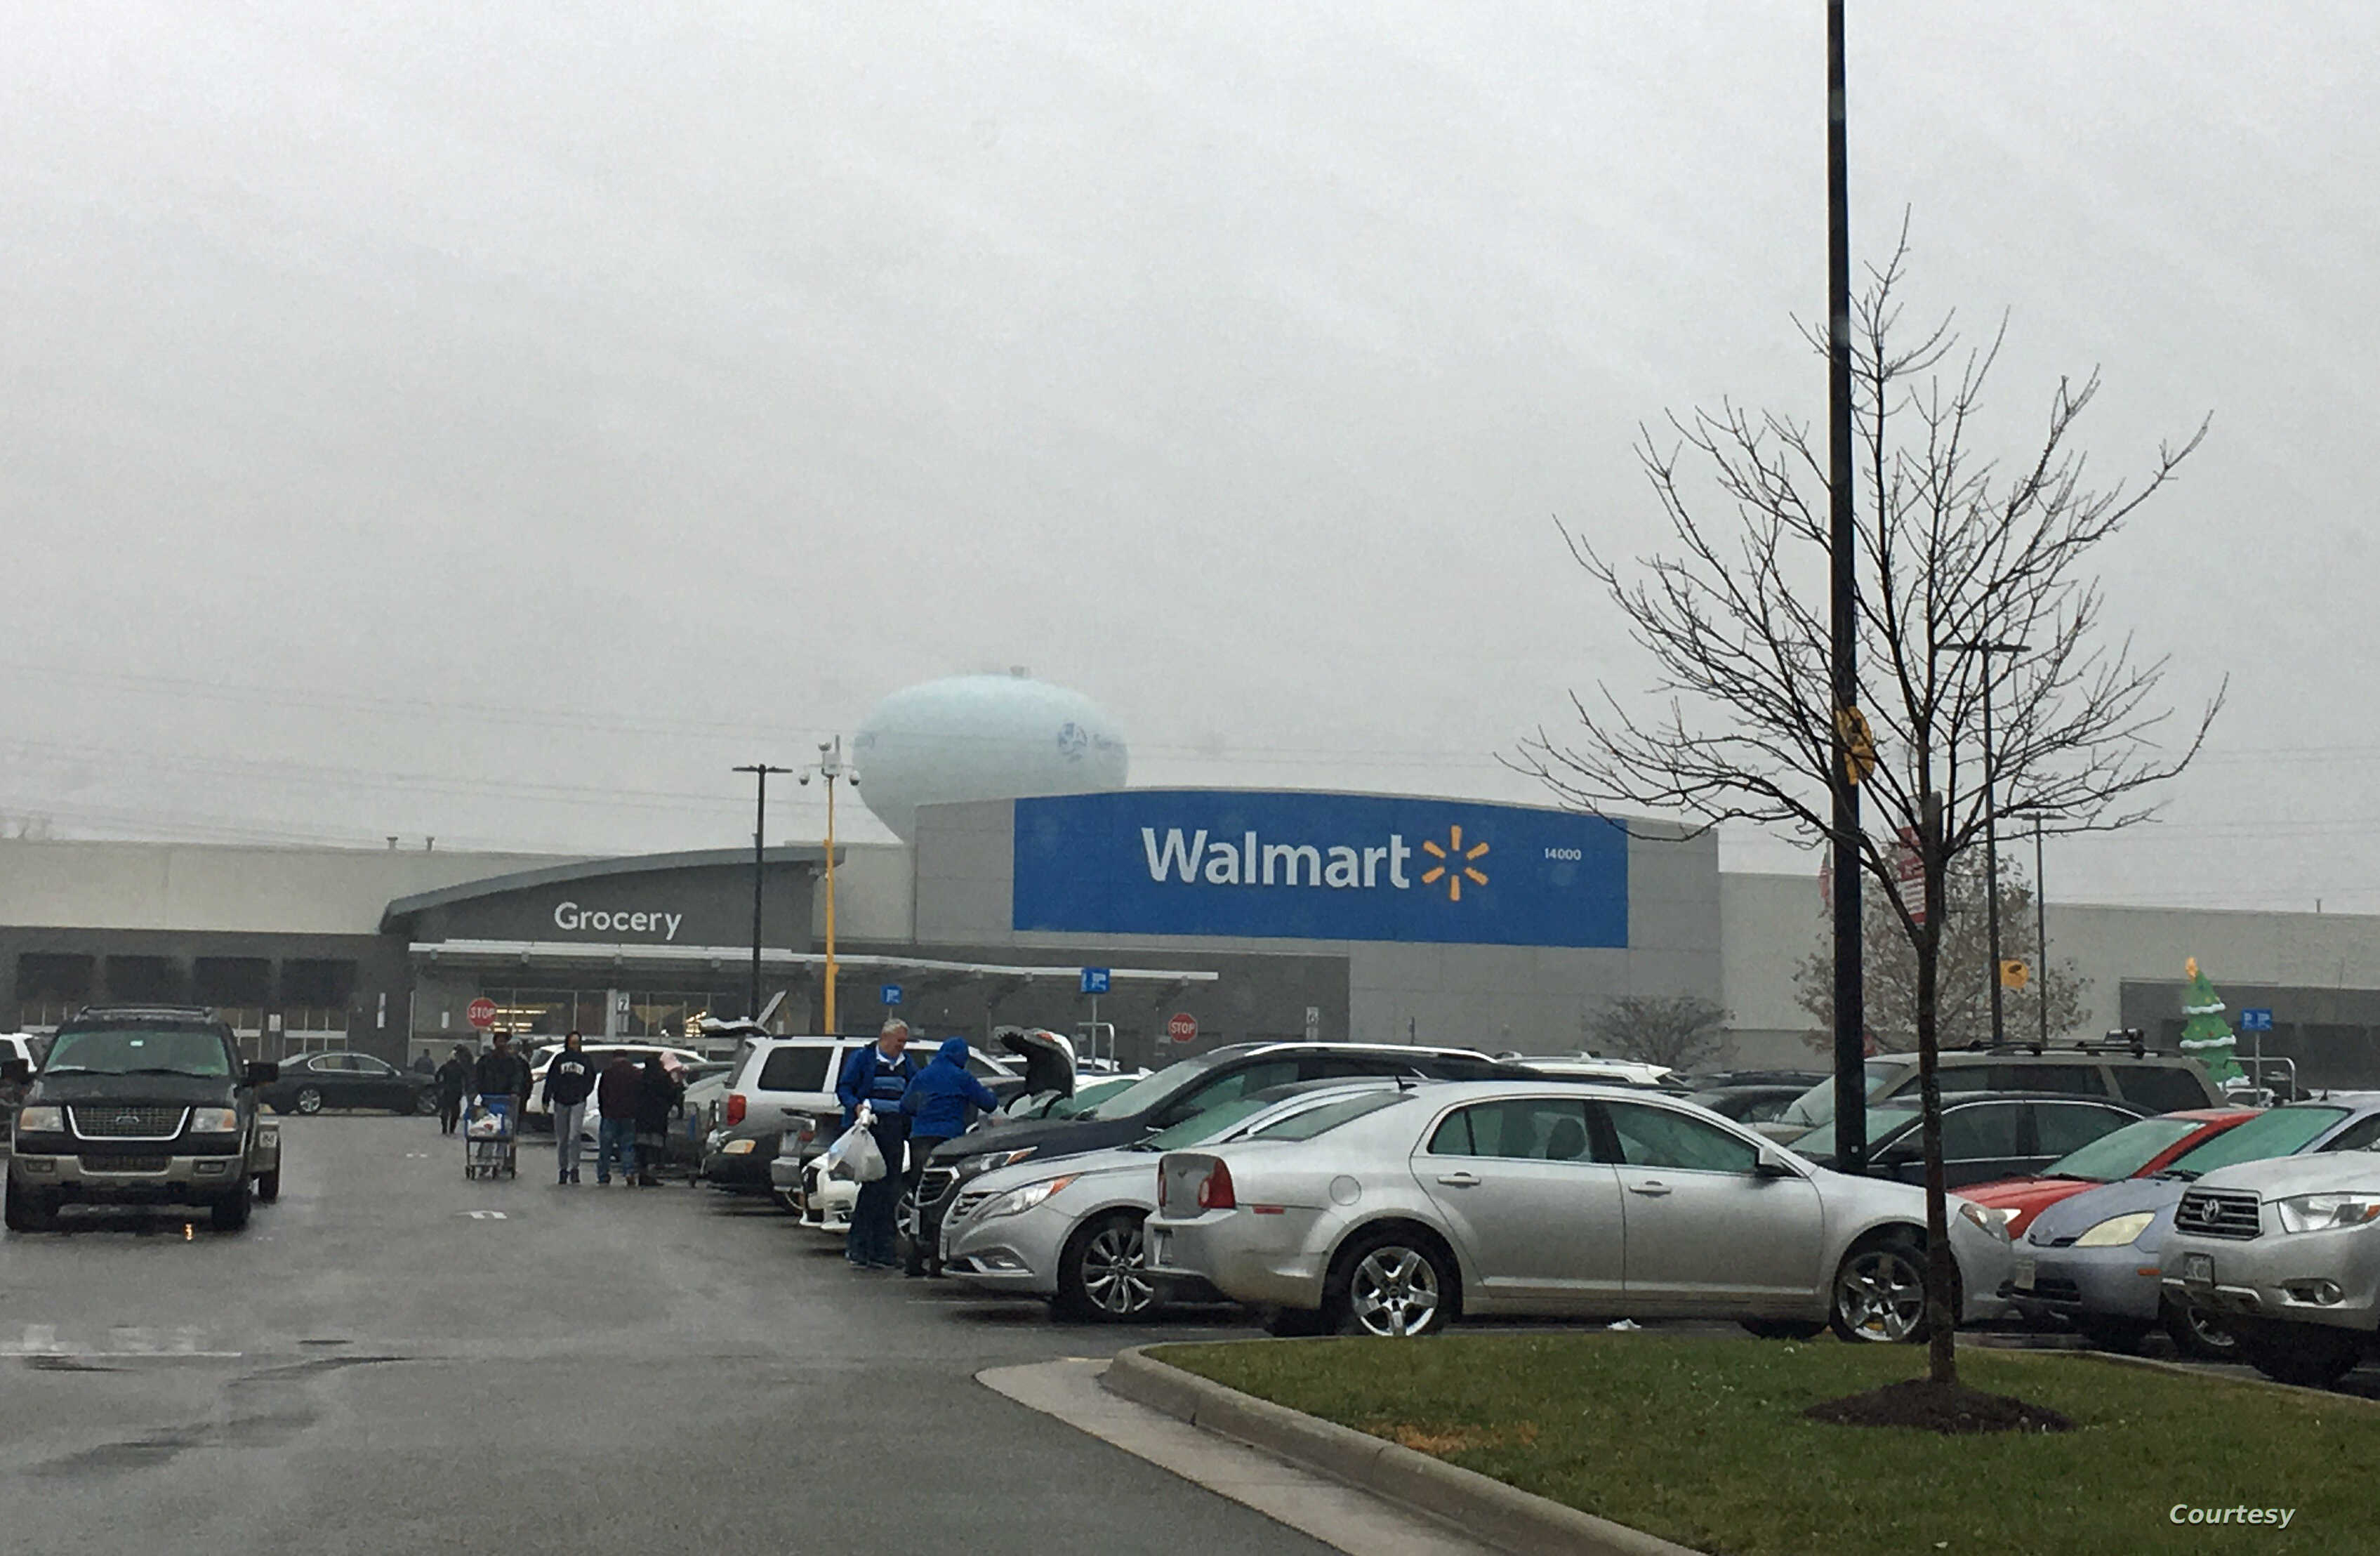 Shoppers walk in the parking lot of a Walmart store in Fairfax Virginia. Walmart says it will stop selling ammunition for handguns and assault-style weapons